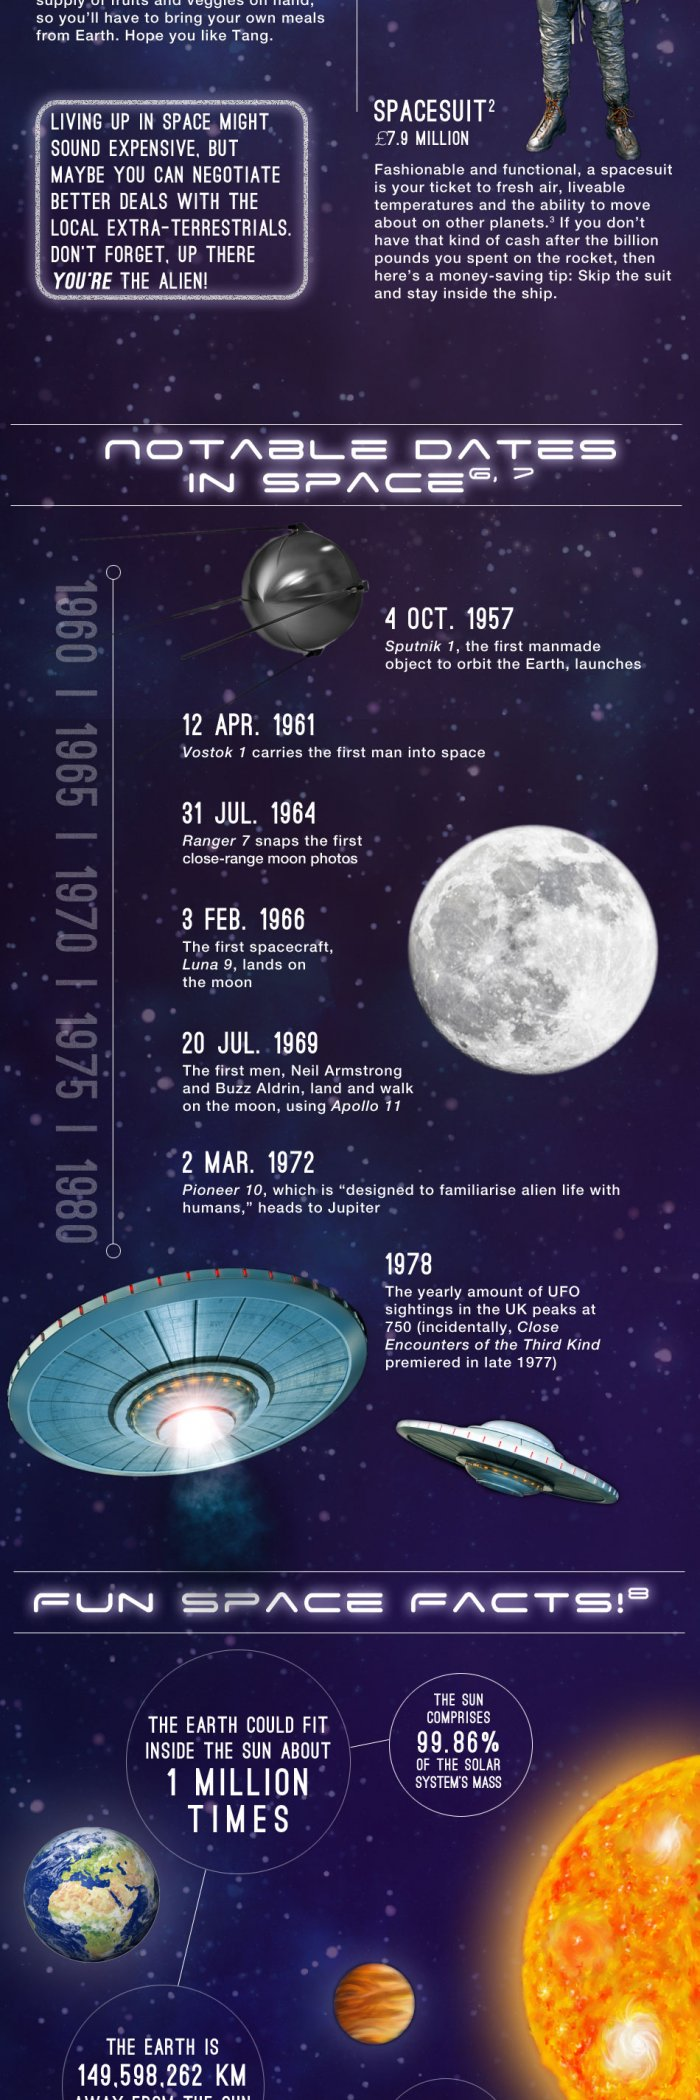 290674 zG136fZwf Space Facts Infographic